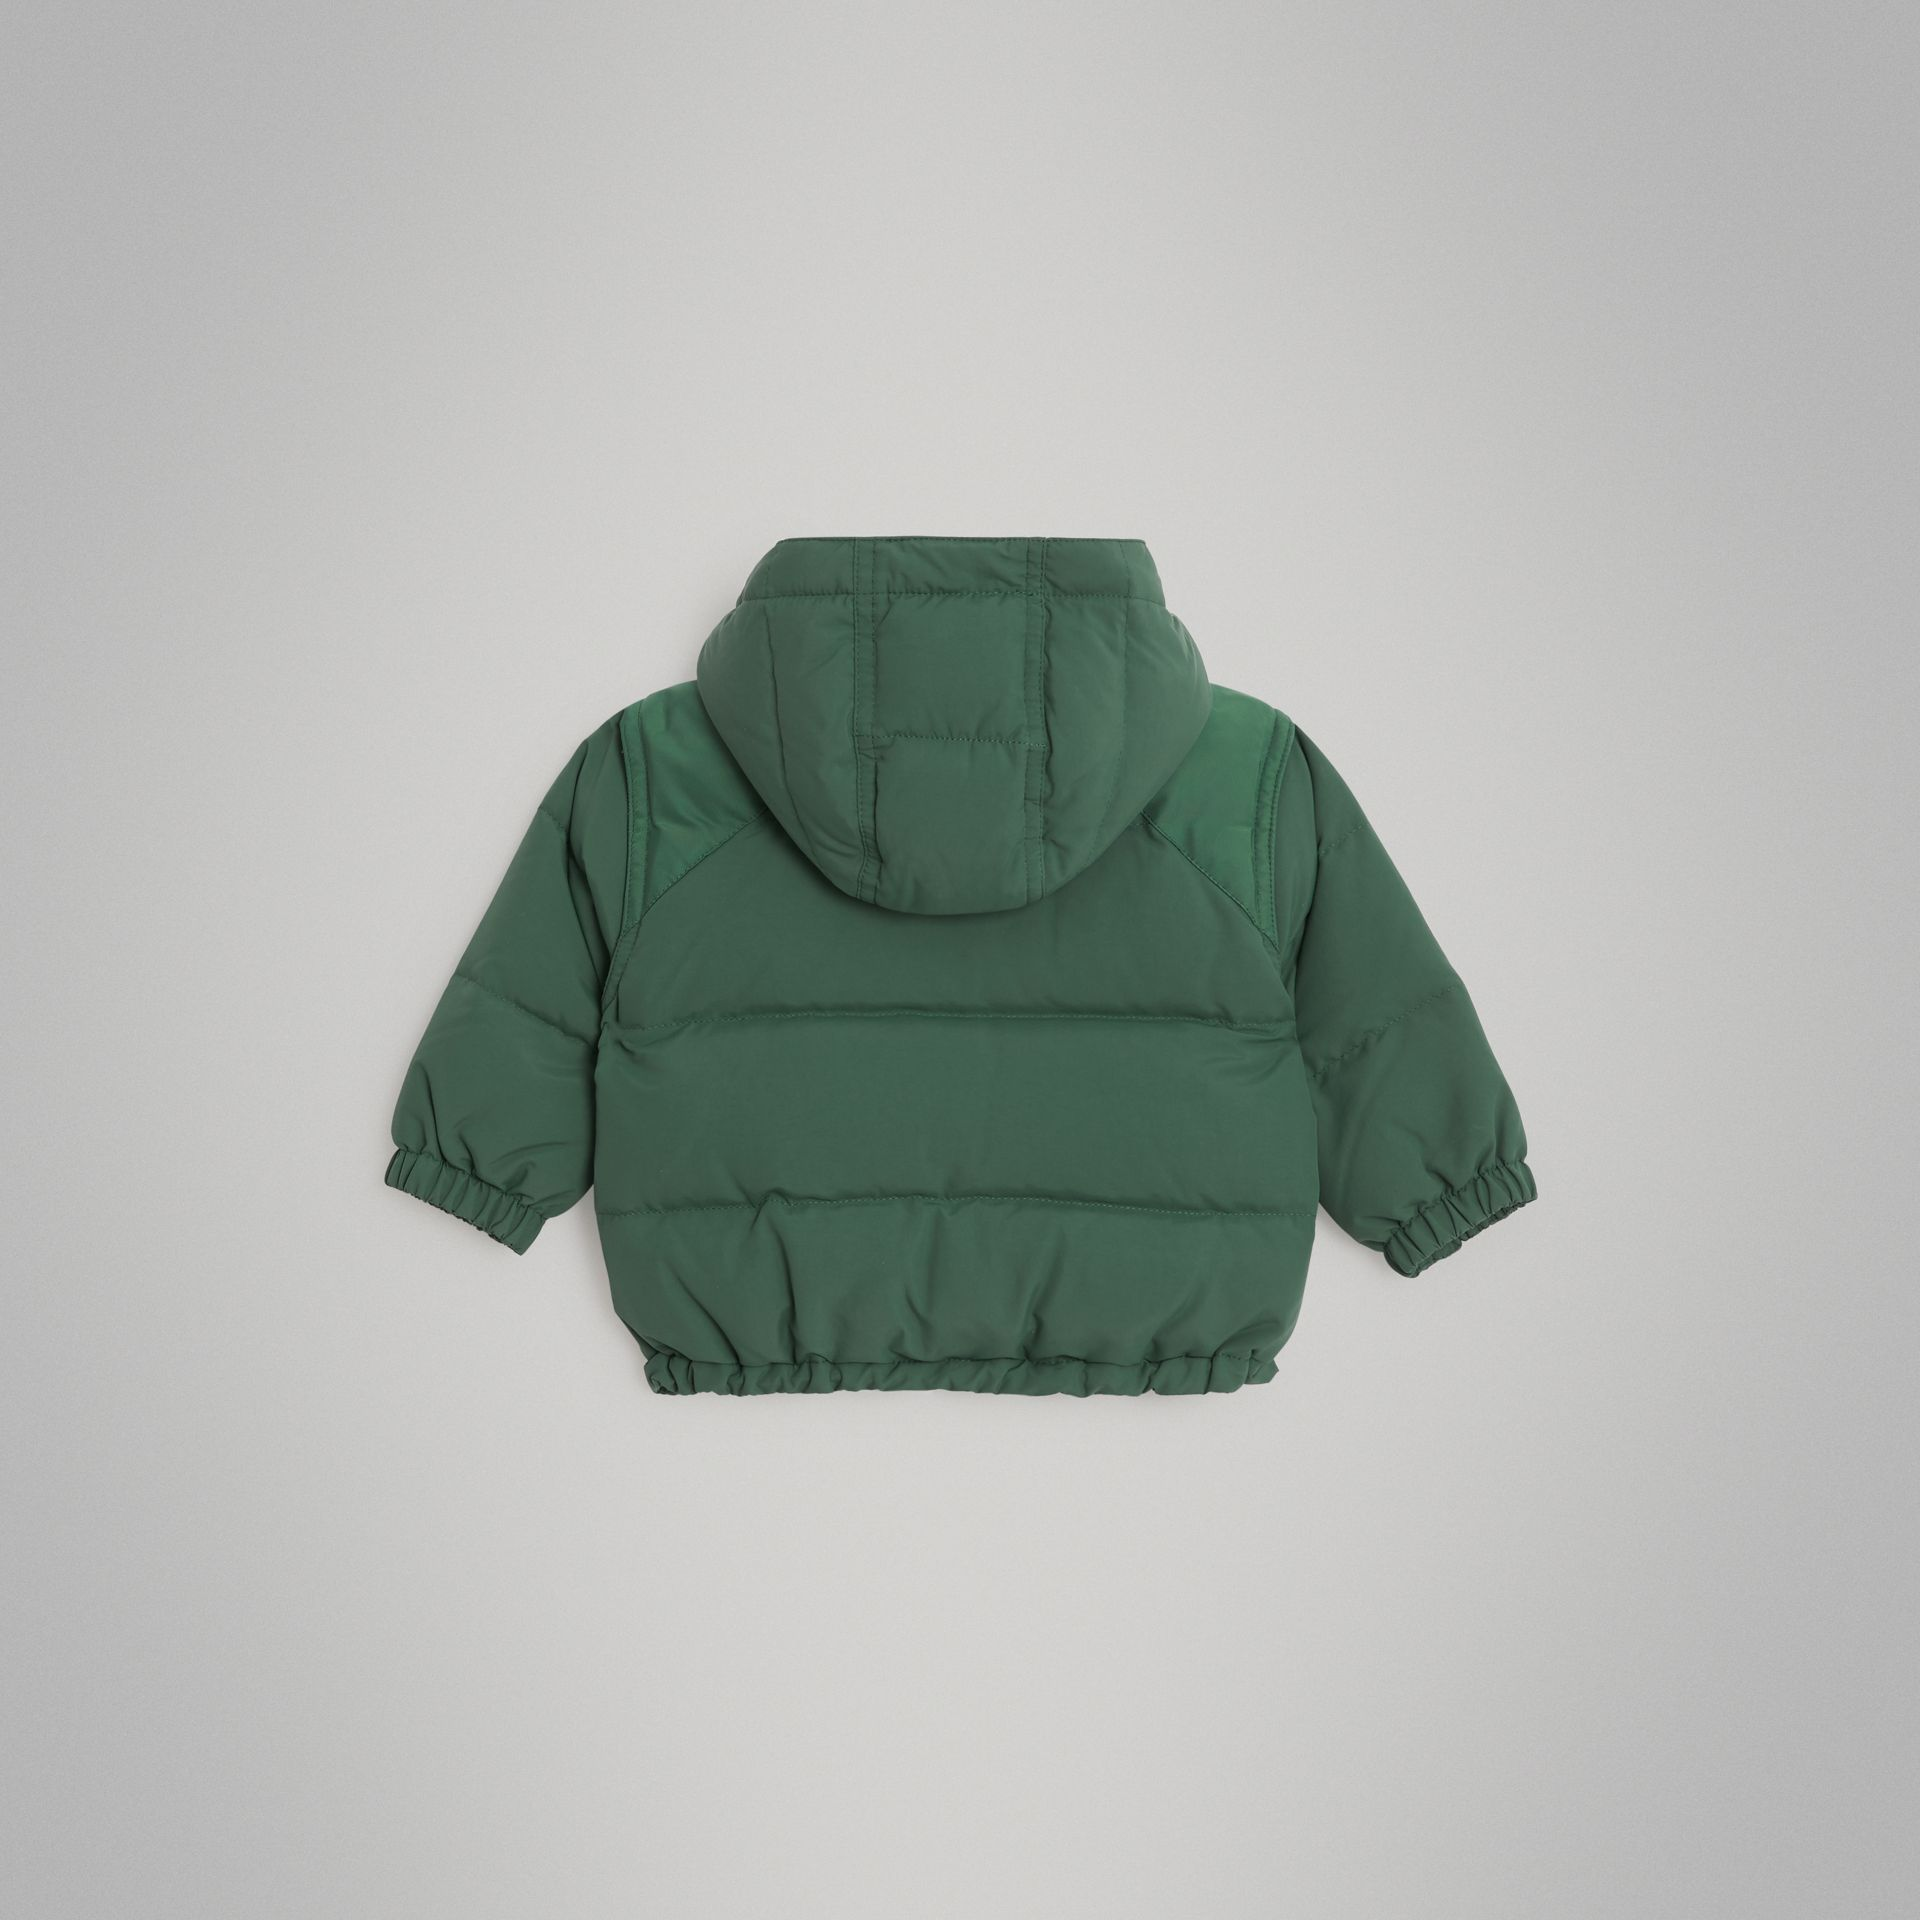 Down-filled Hooded Puffer Jacket in Veridian Green - Children | Burberry - gallery image 3